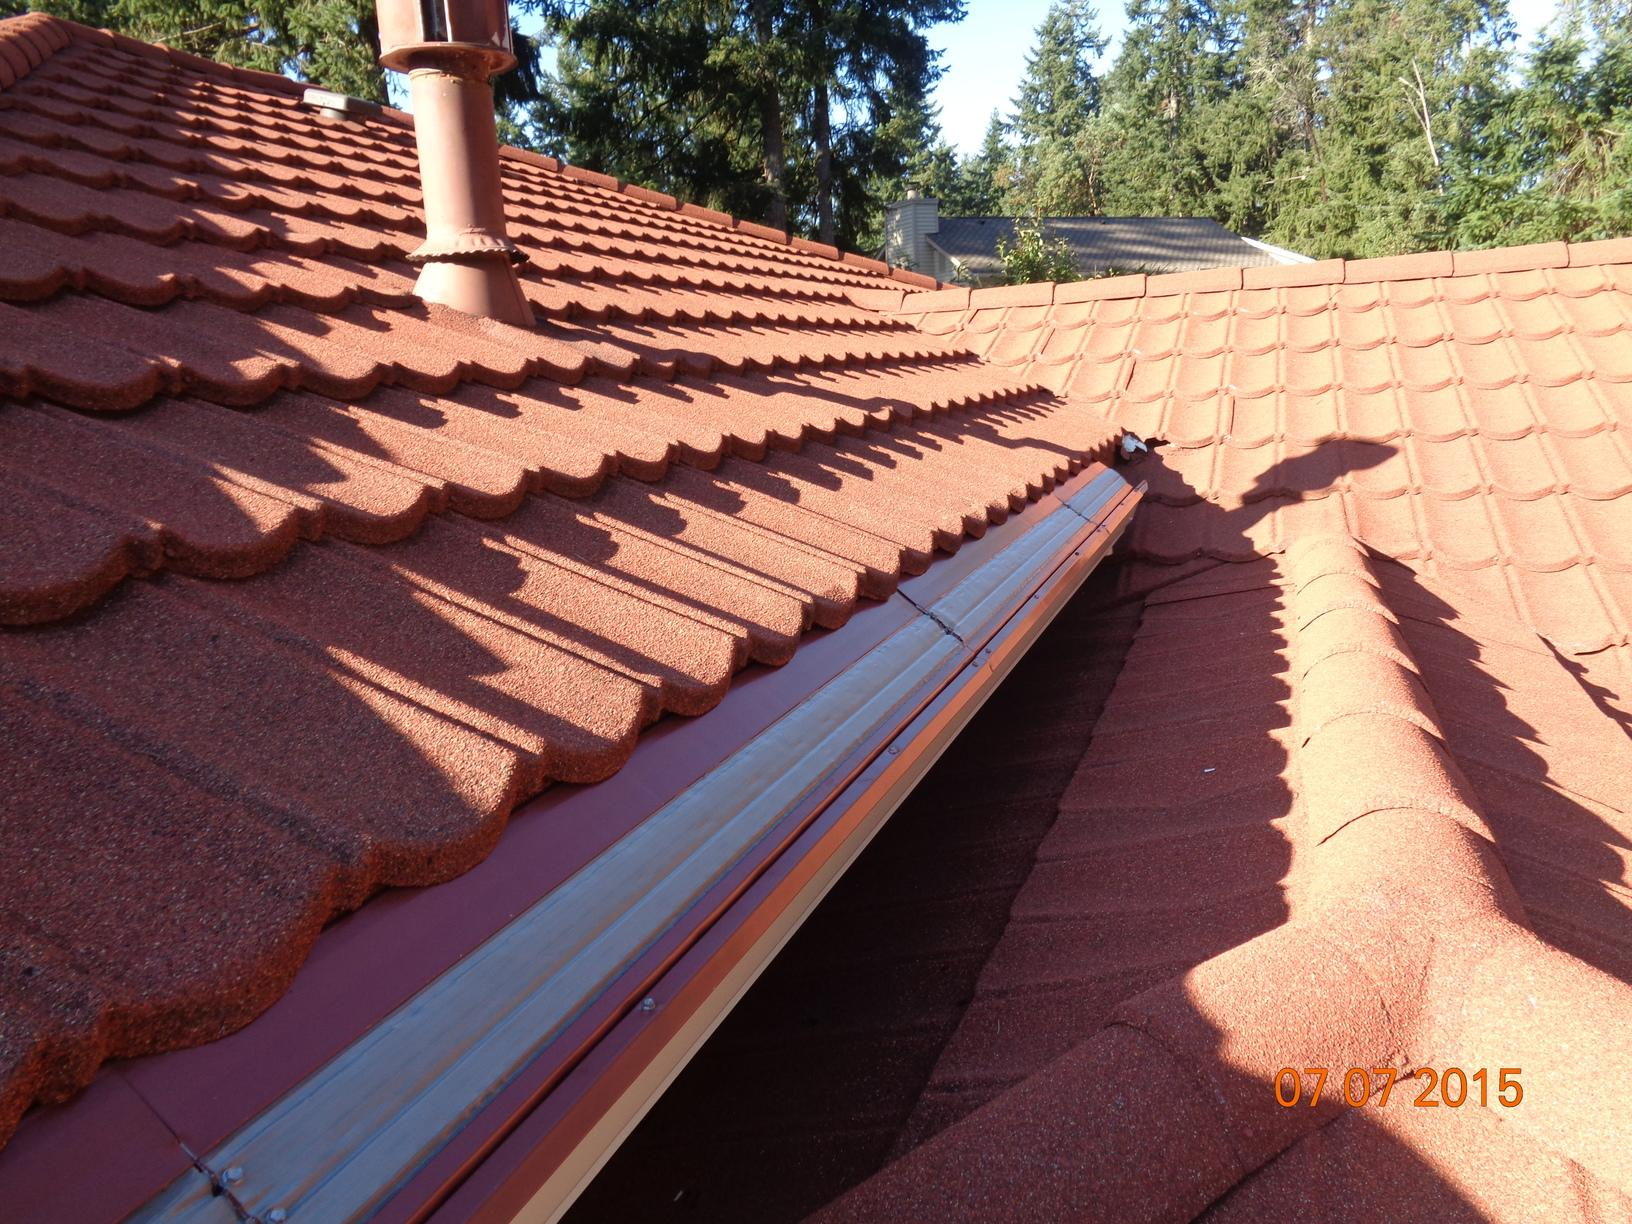 MasterShield Gutter Guards Installation on a Tile Roof